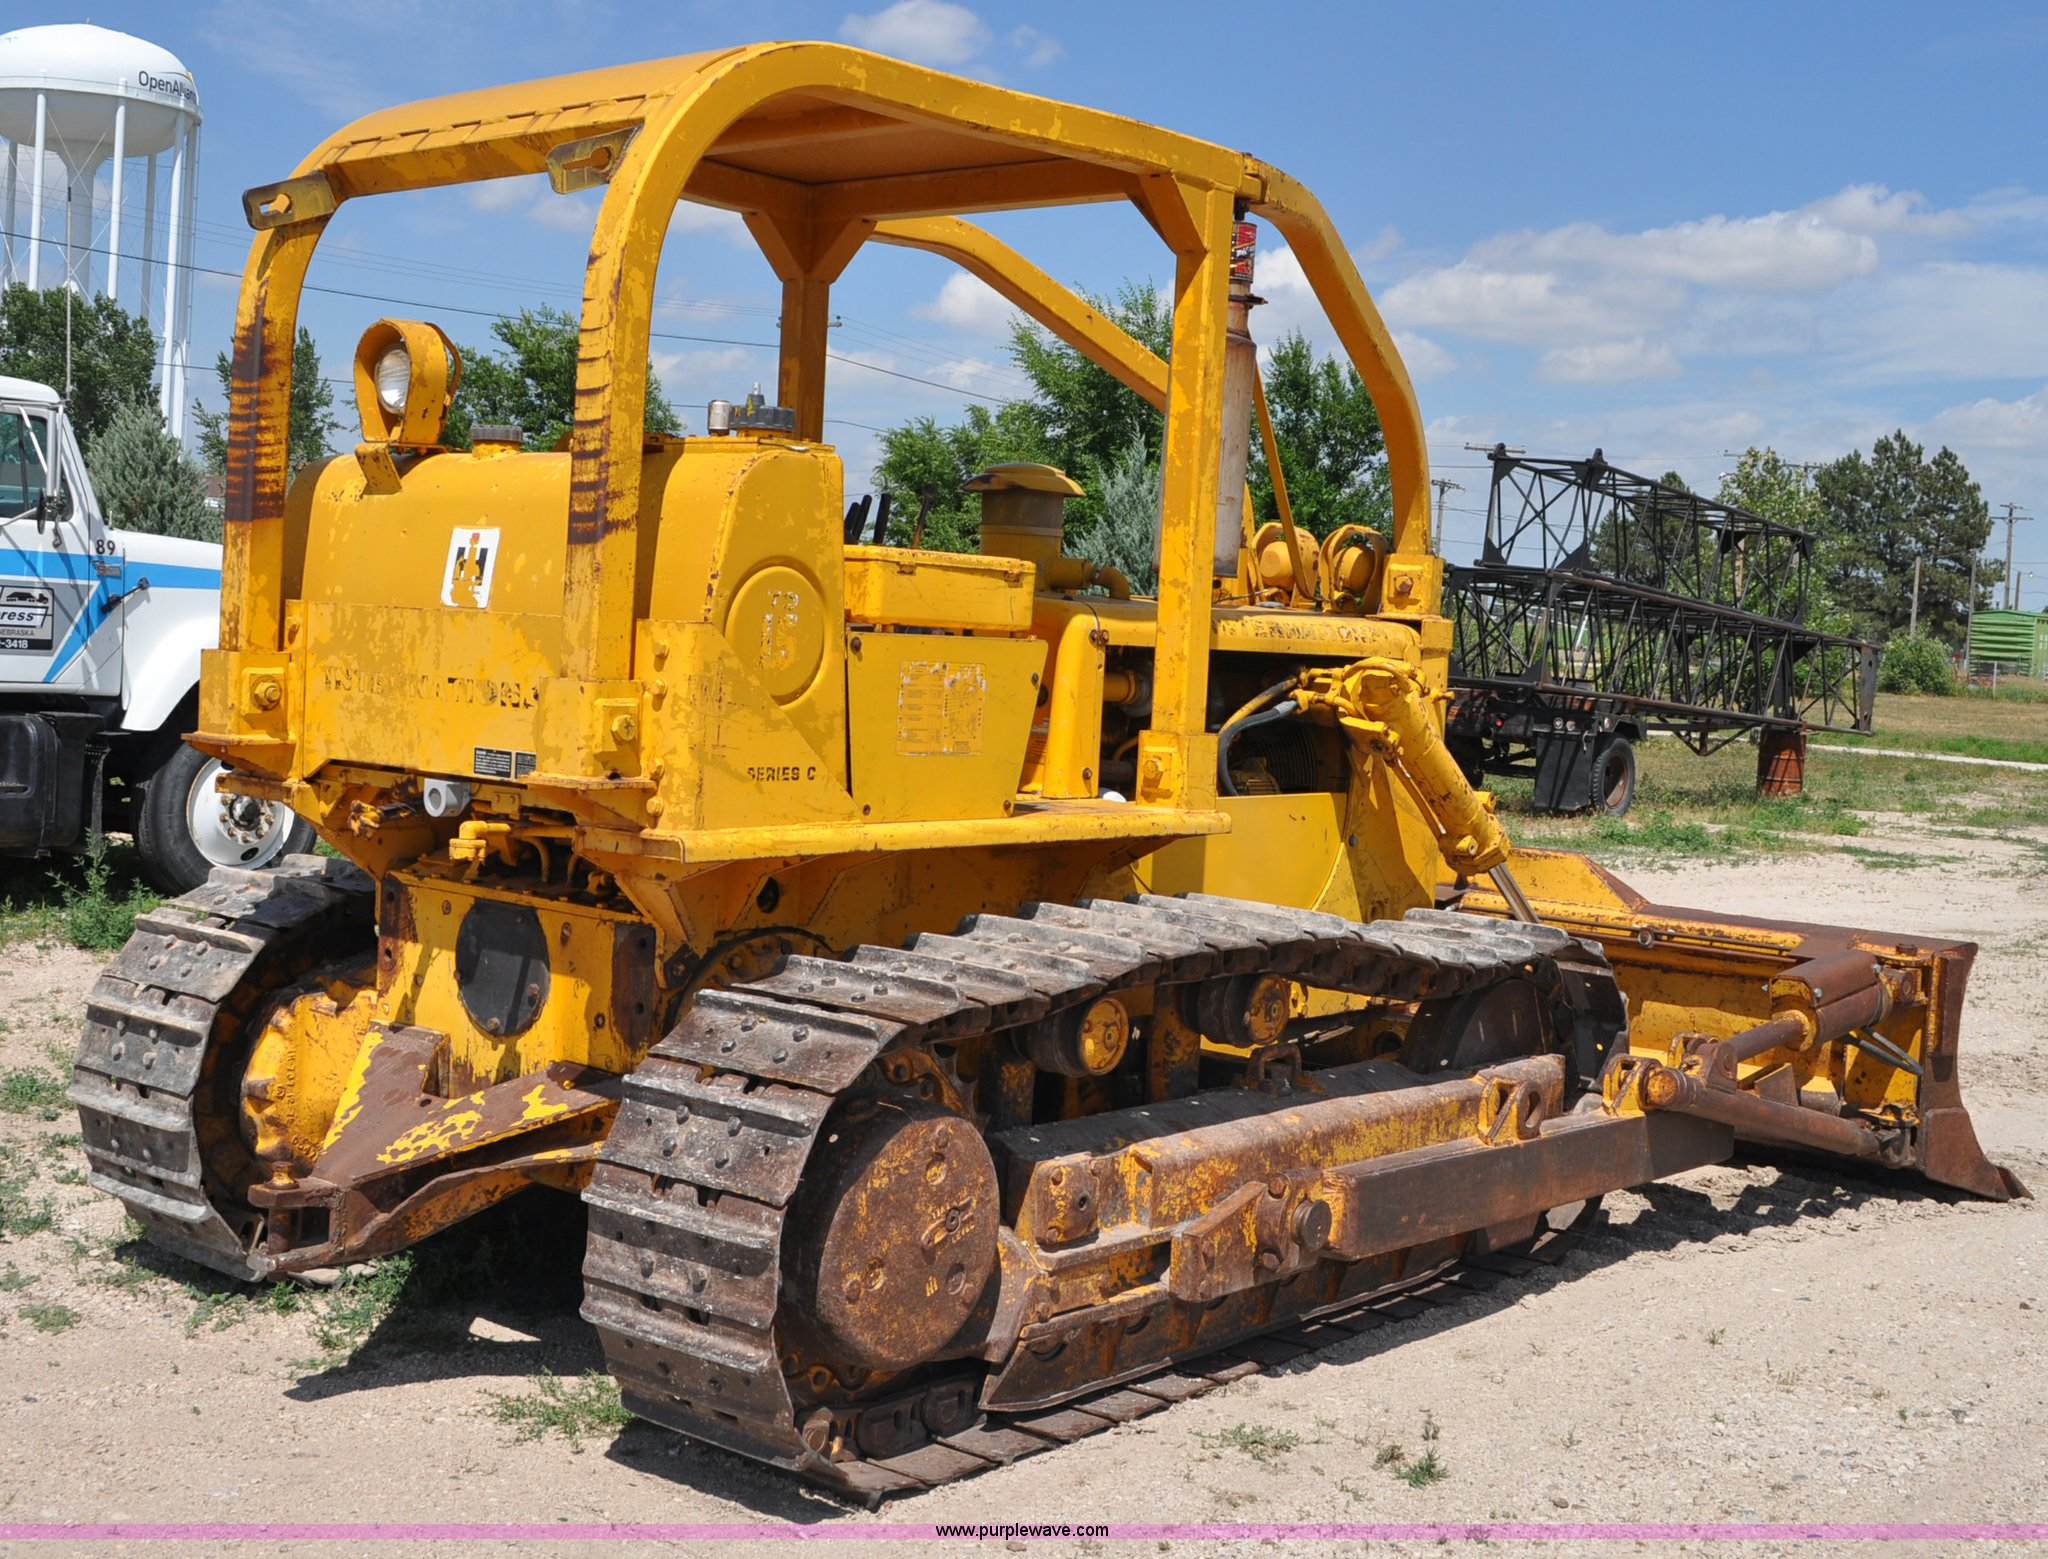 1973 International TD15C dozer | Item G6083 | SOLD! August 2